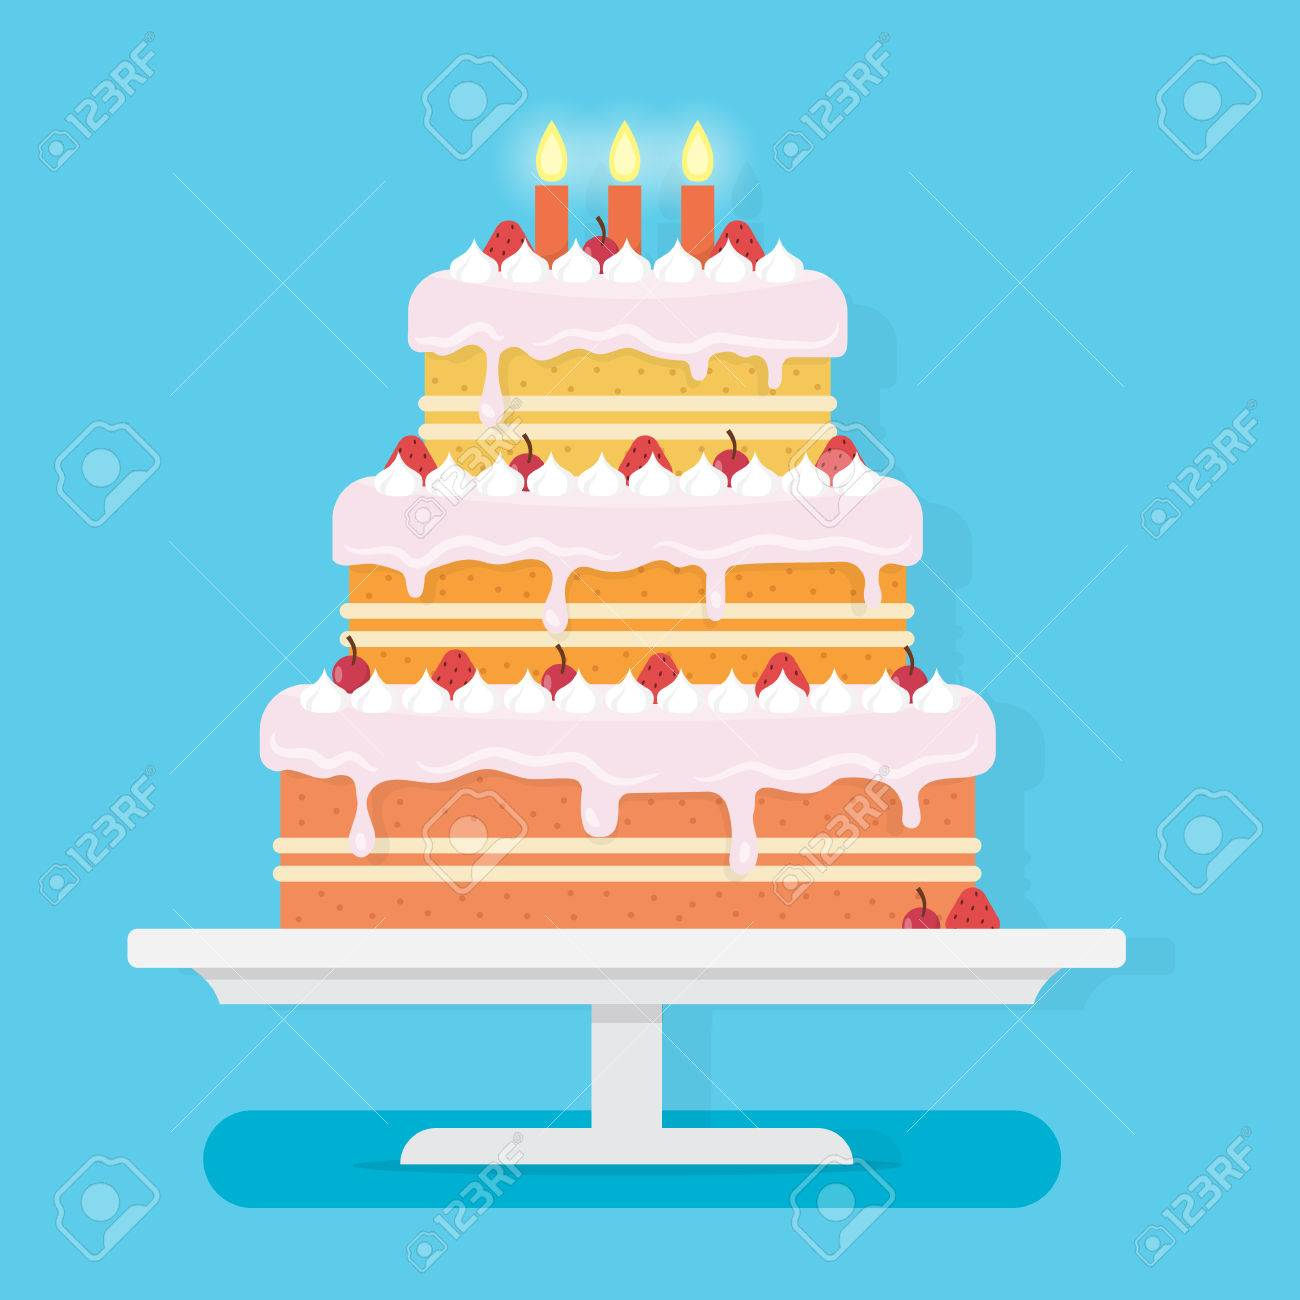 Happy Birthday Cake With Candles Party And Celebration Design